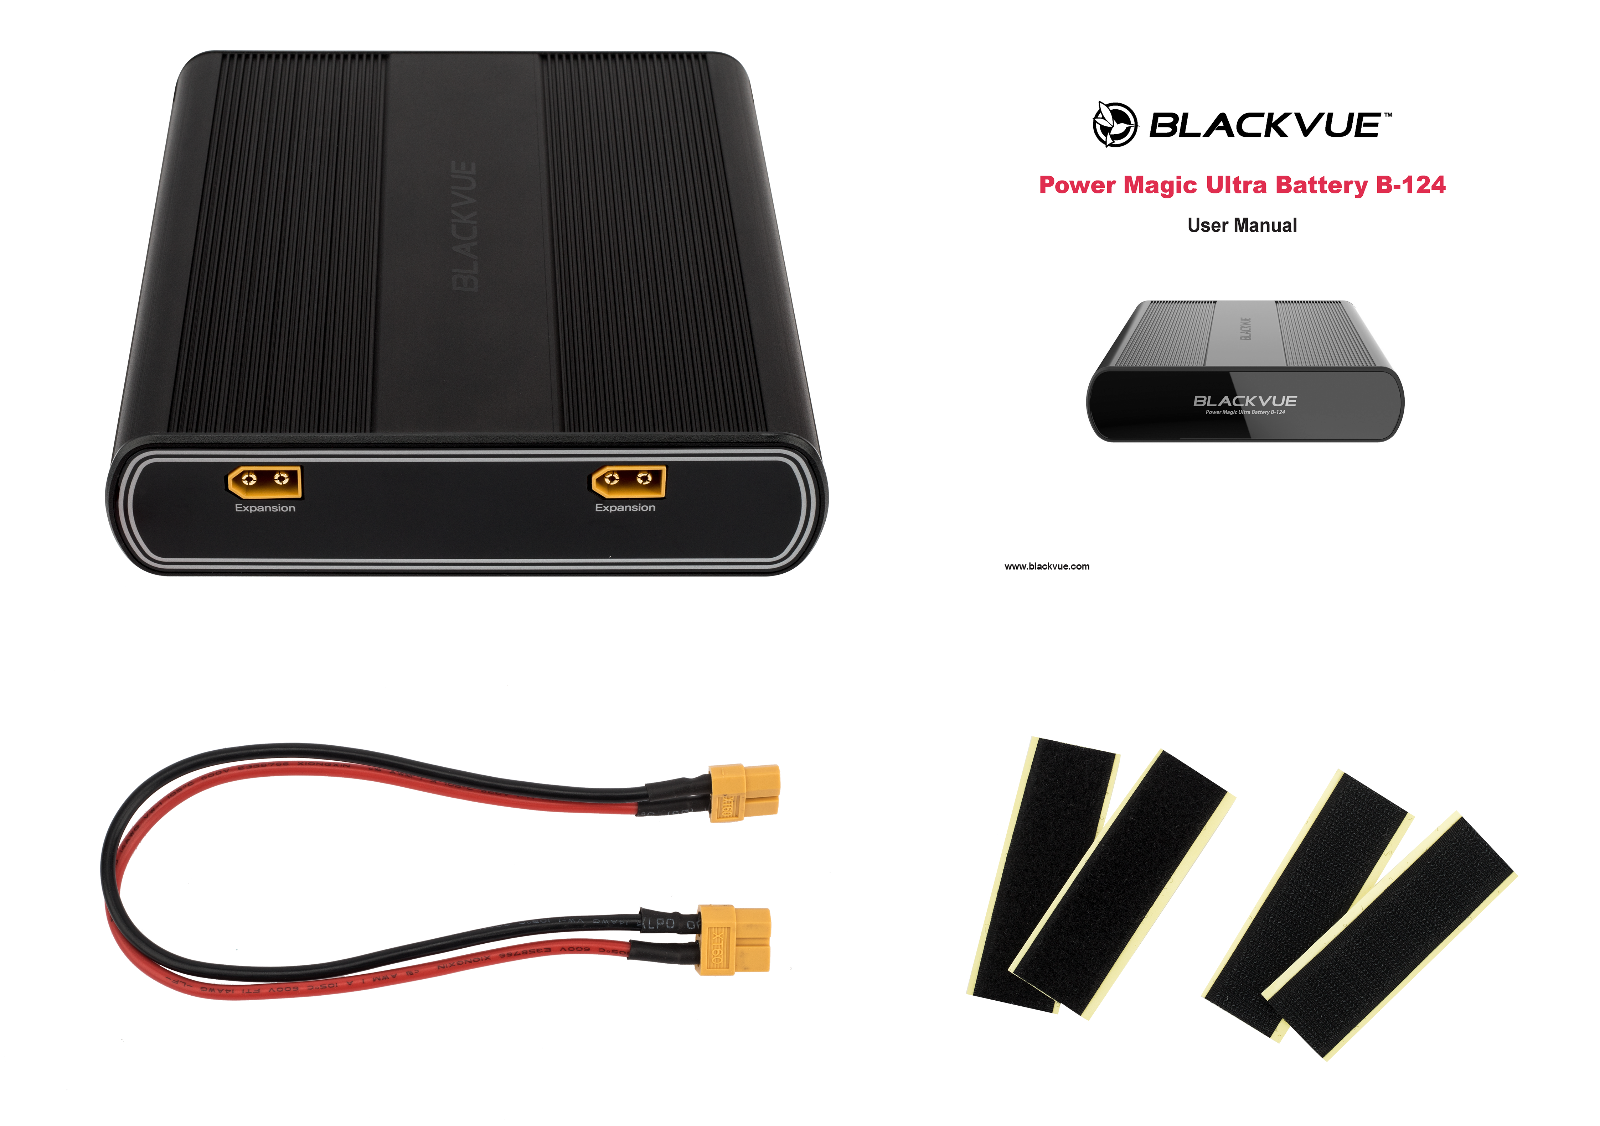 BlackVue Power Magic Ultra Battery Expansion Pack (B-124E)